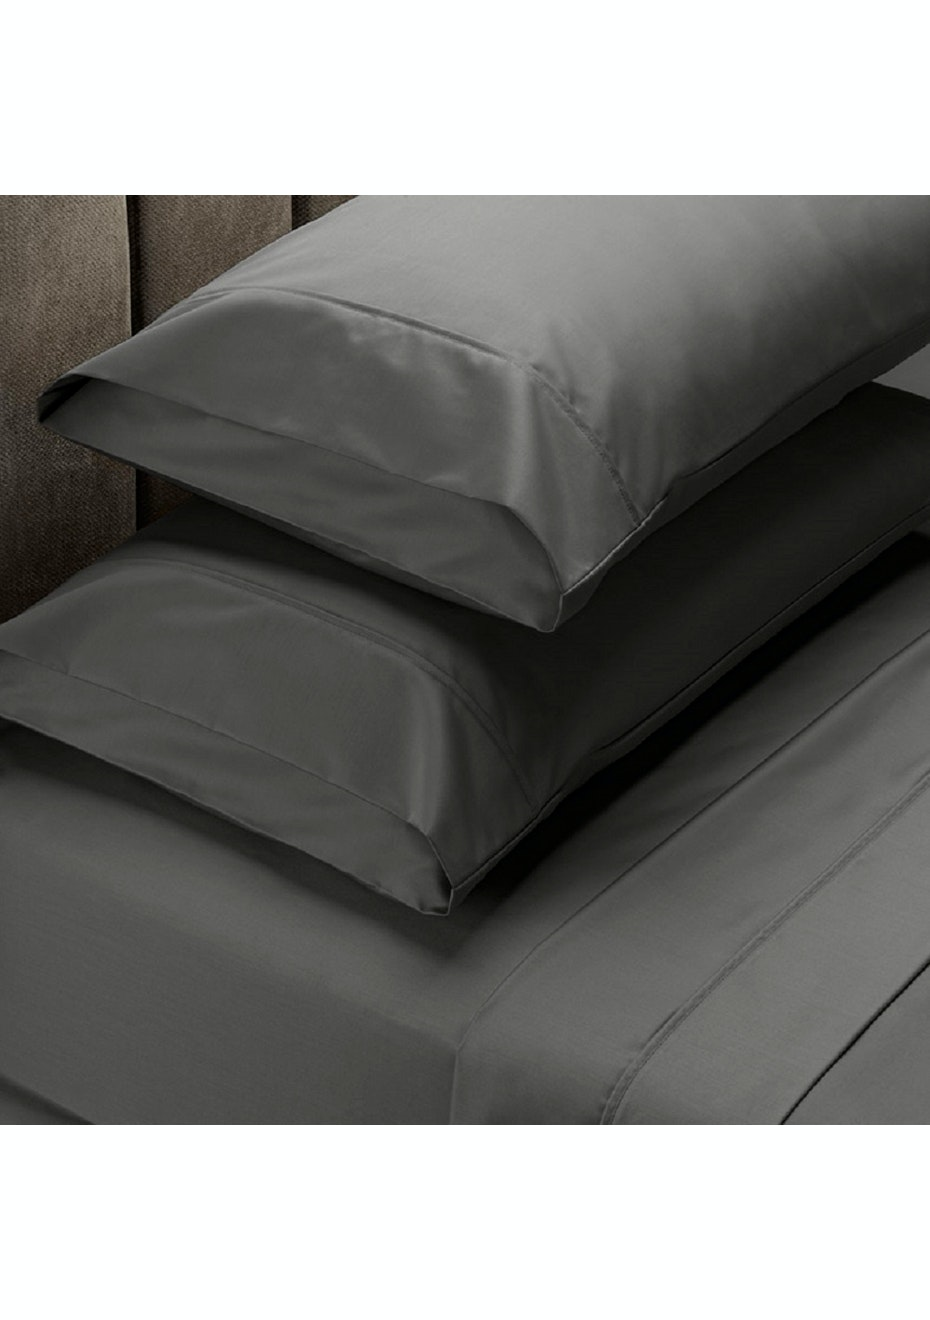 Park Avenue 1000 Thread count 100% Egyptian Cotton Sheet sets King - Granite